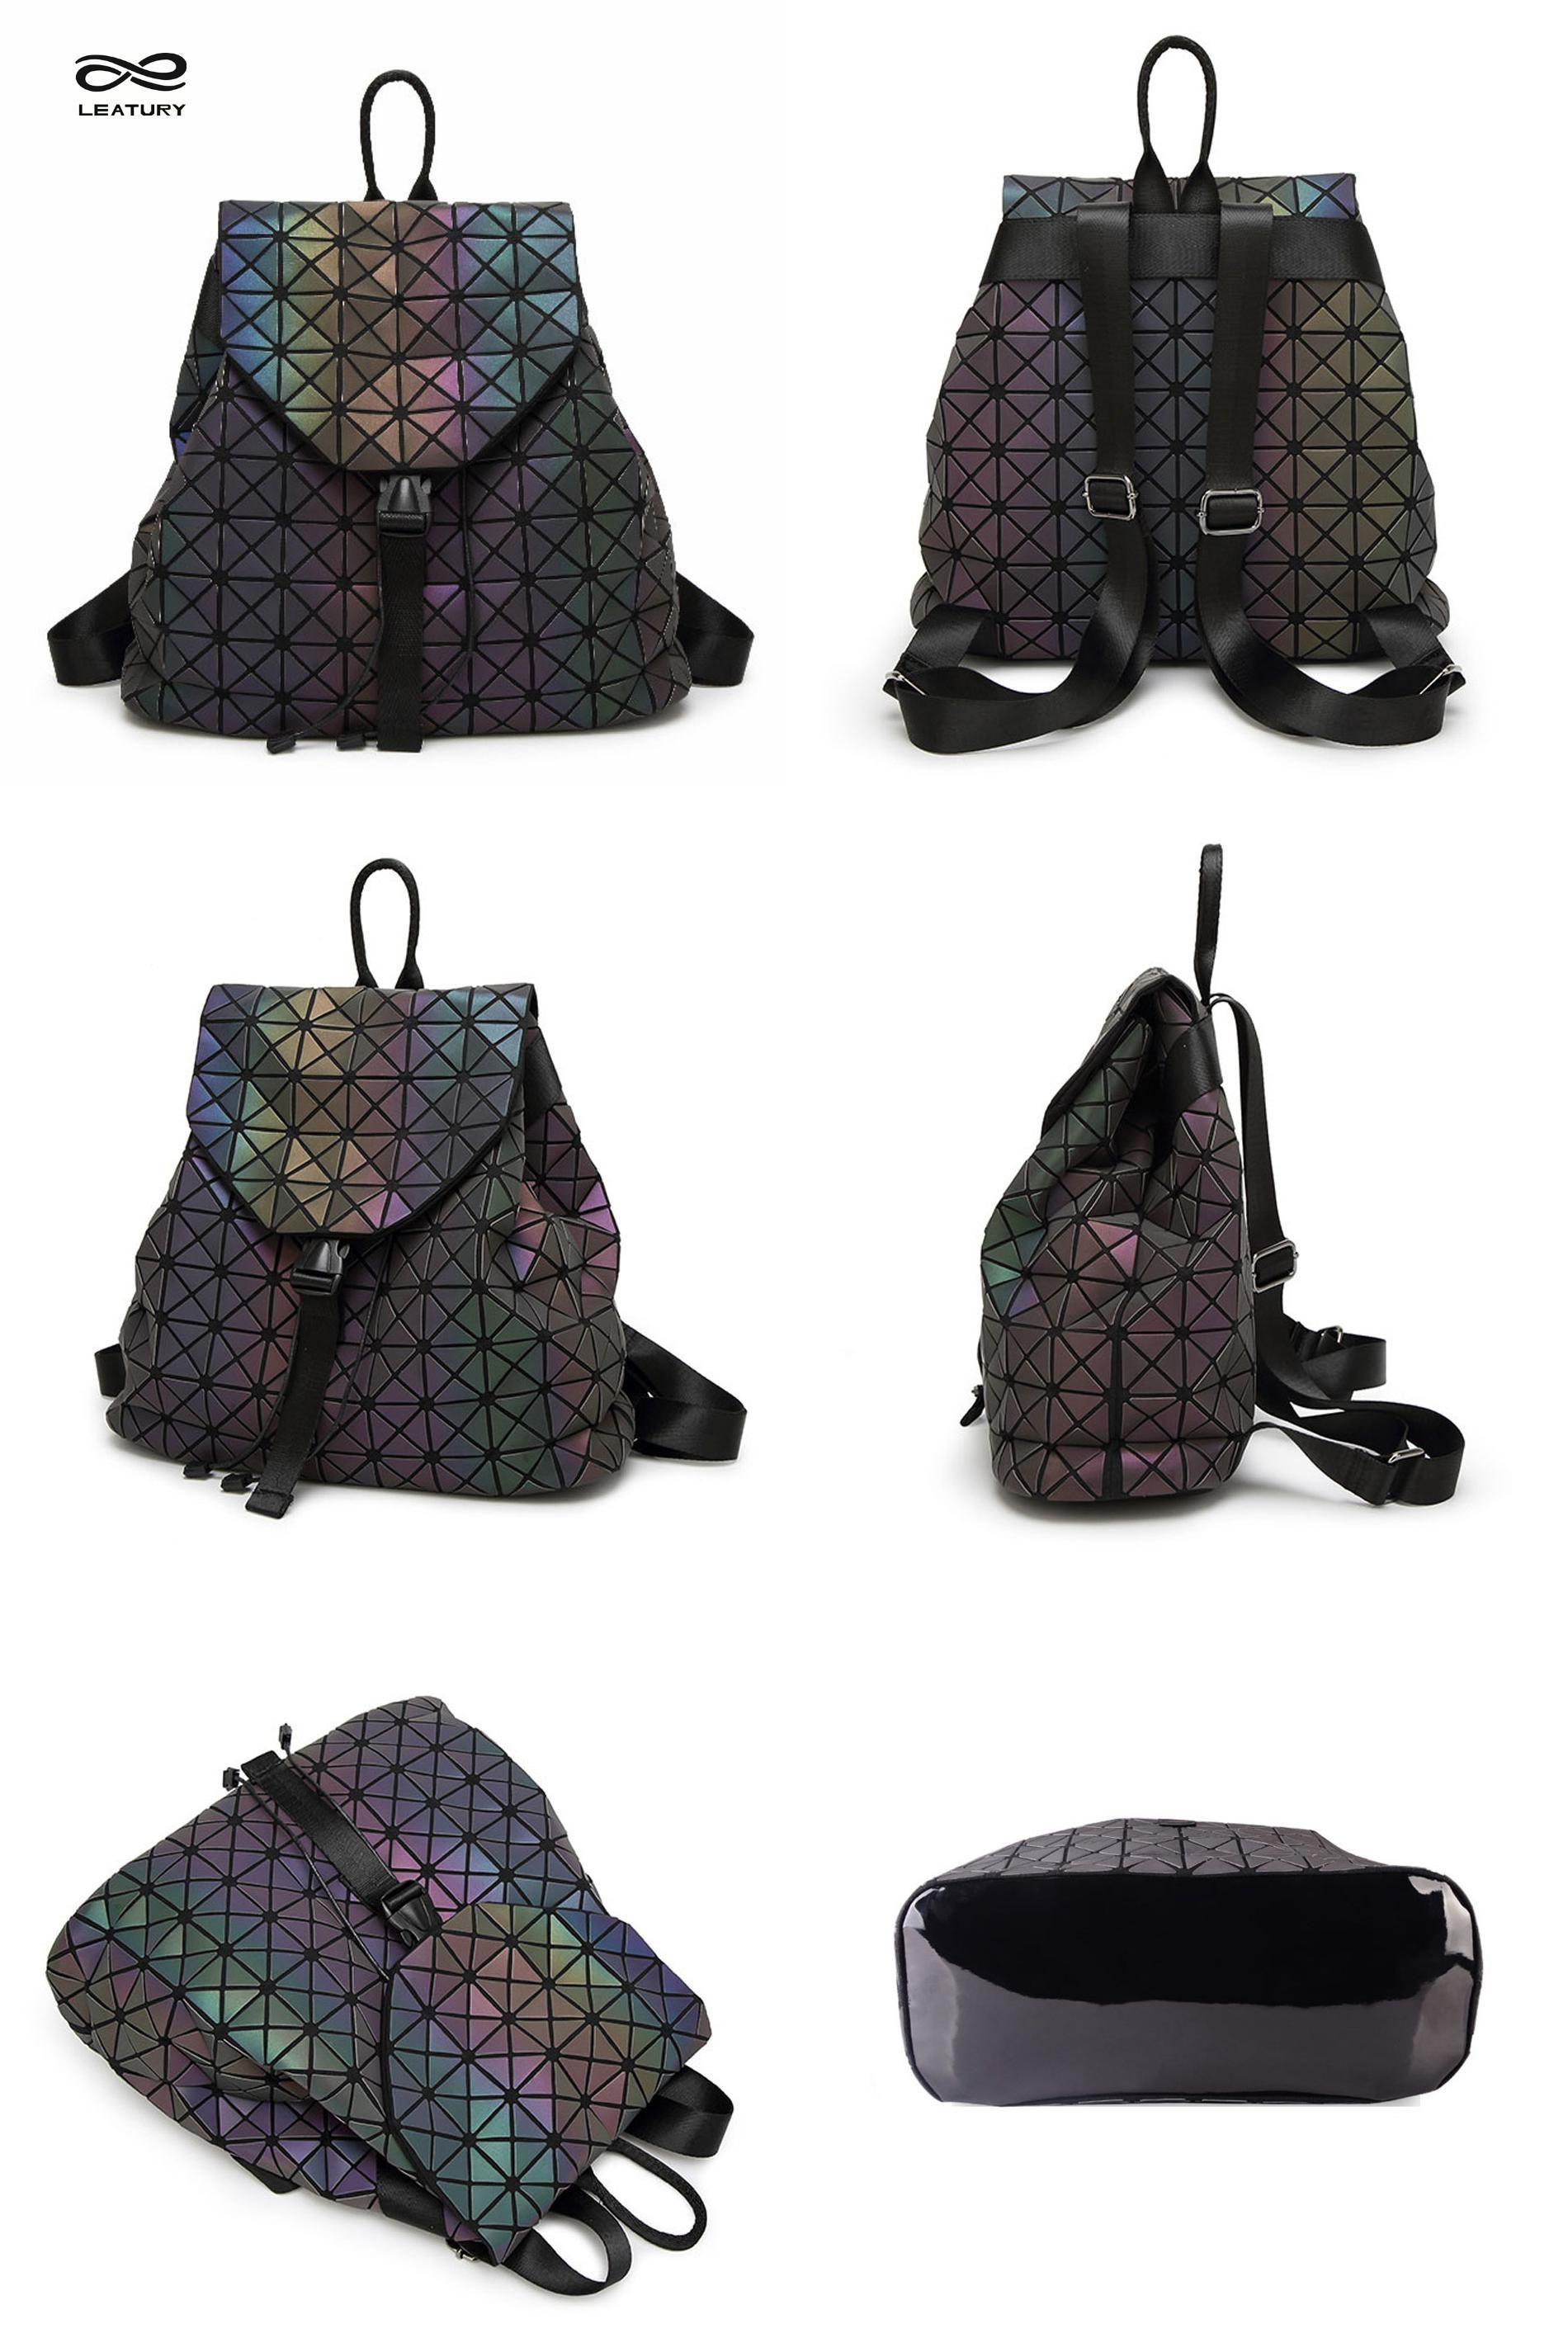 Visit to Buy  Leatury Luminous Backpack Diamond Lattice Bag Travel  Geometric Women Fashion Bag 356f6b6094e19